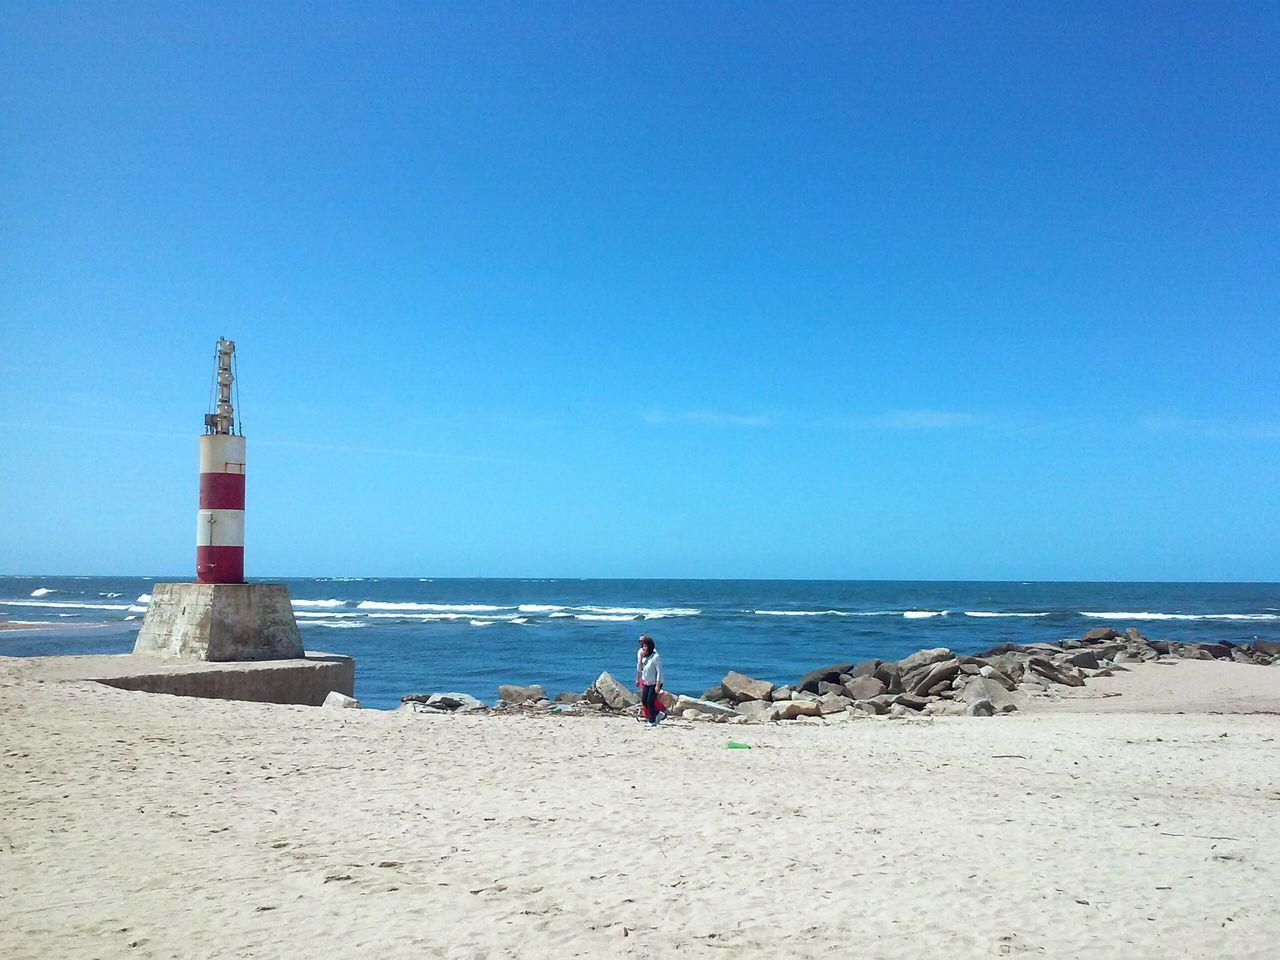 sea, horizon over water, beach, water, nature, lighthouse, scenics, sand, day, copy space, tranquility, clear sky, beauty in nature, blue, tranquil scene, built structure, sky, architecture, real people, outdoors, building exterior, men, one person, people